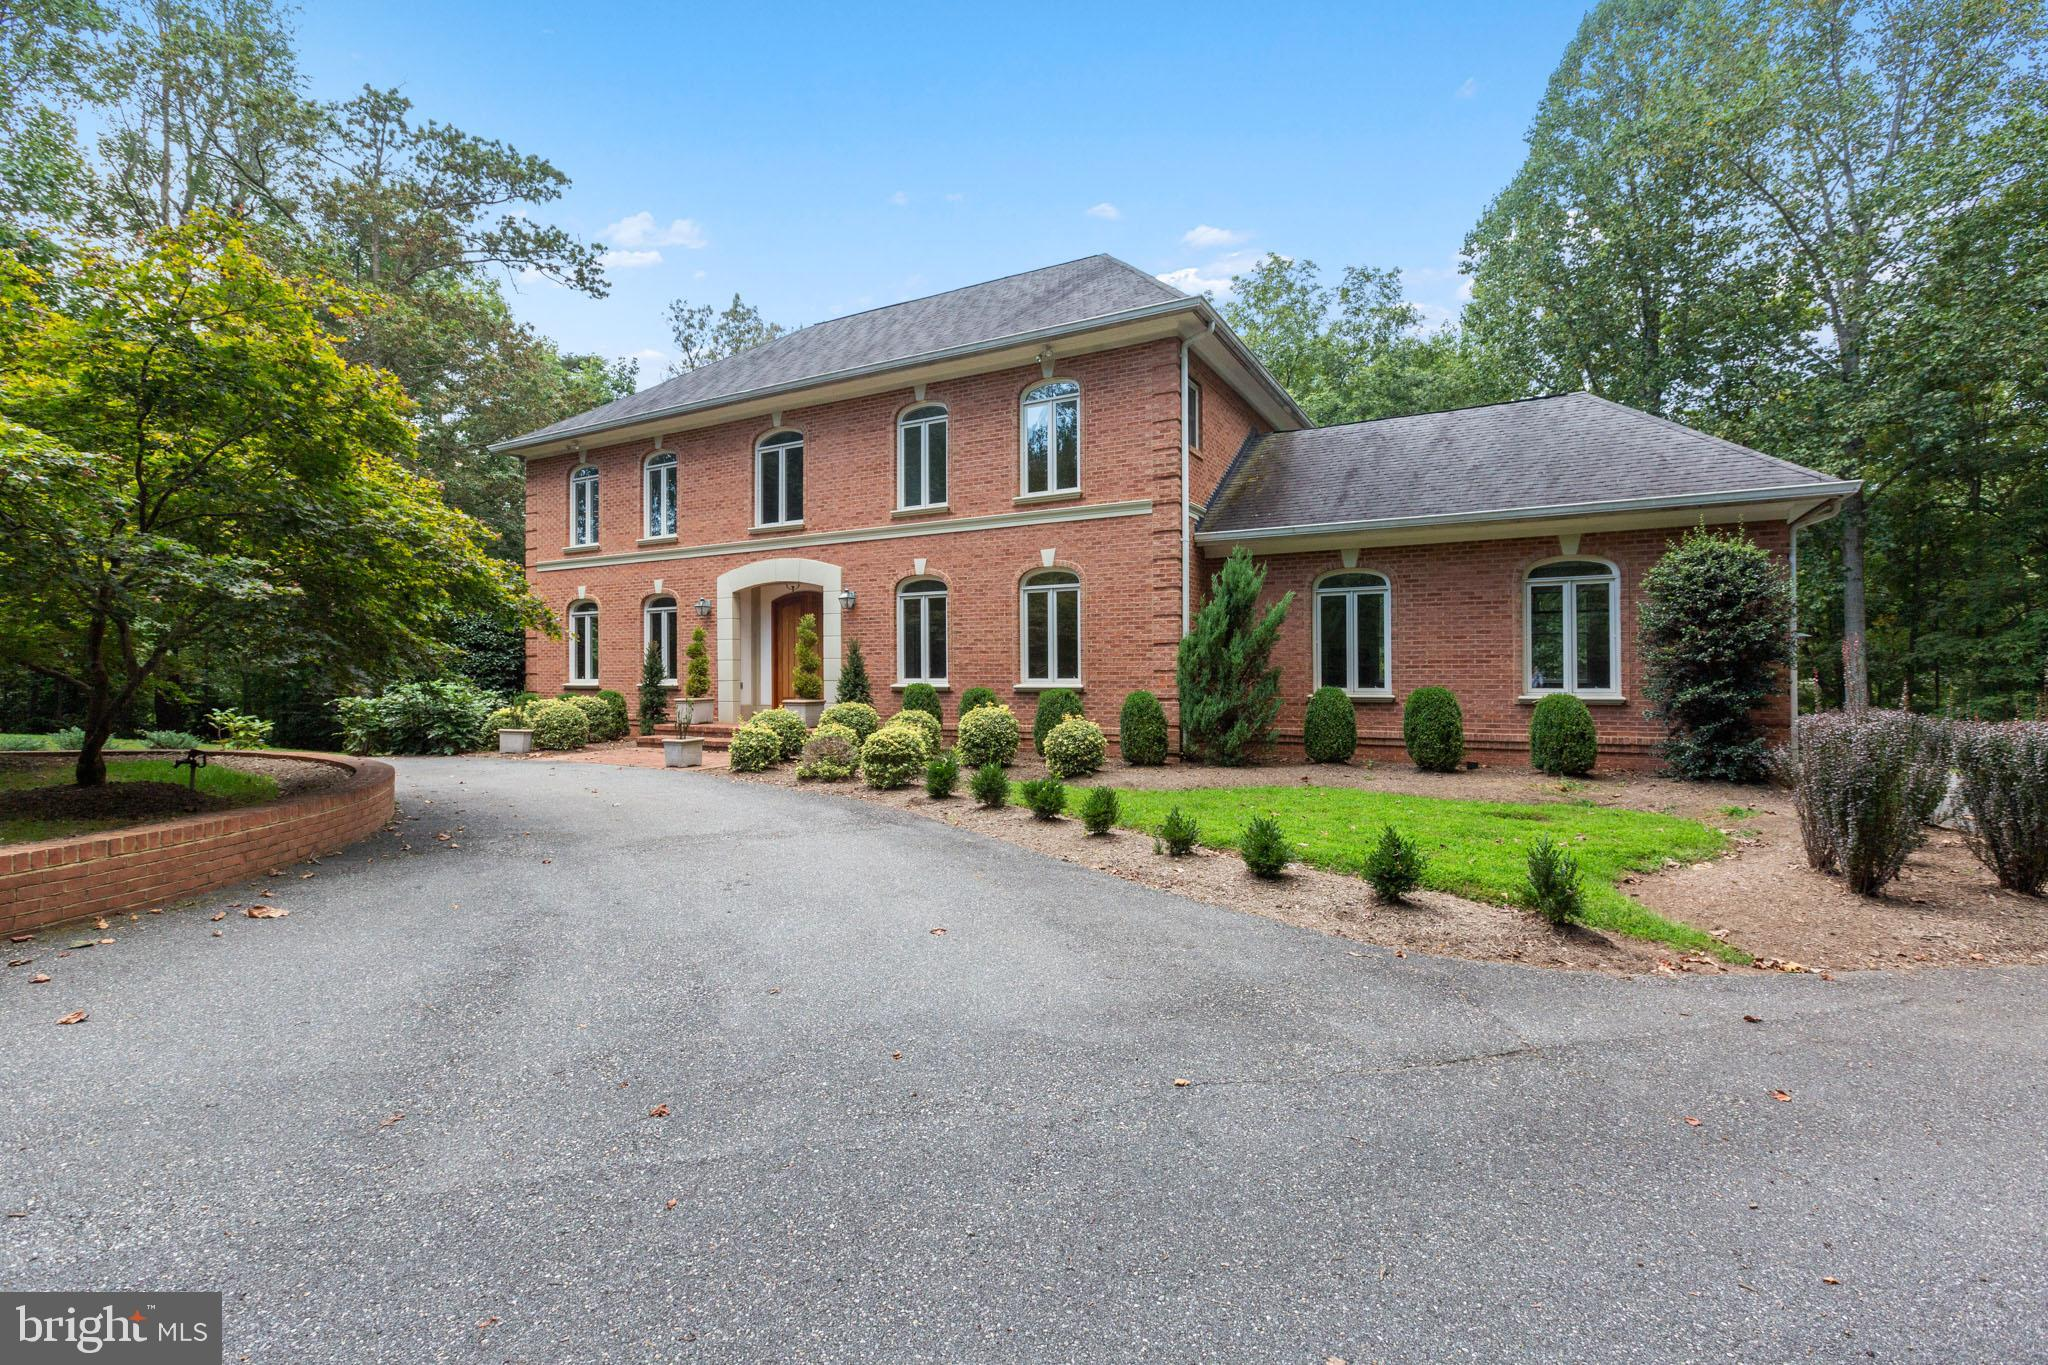 9121 MILL POND VALLEY DRIVE, MCLEAN, VA 22102